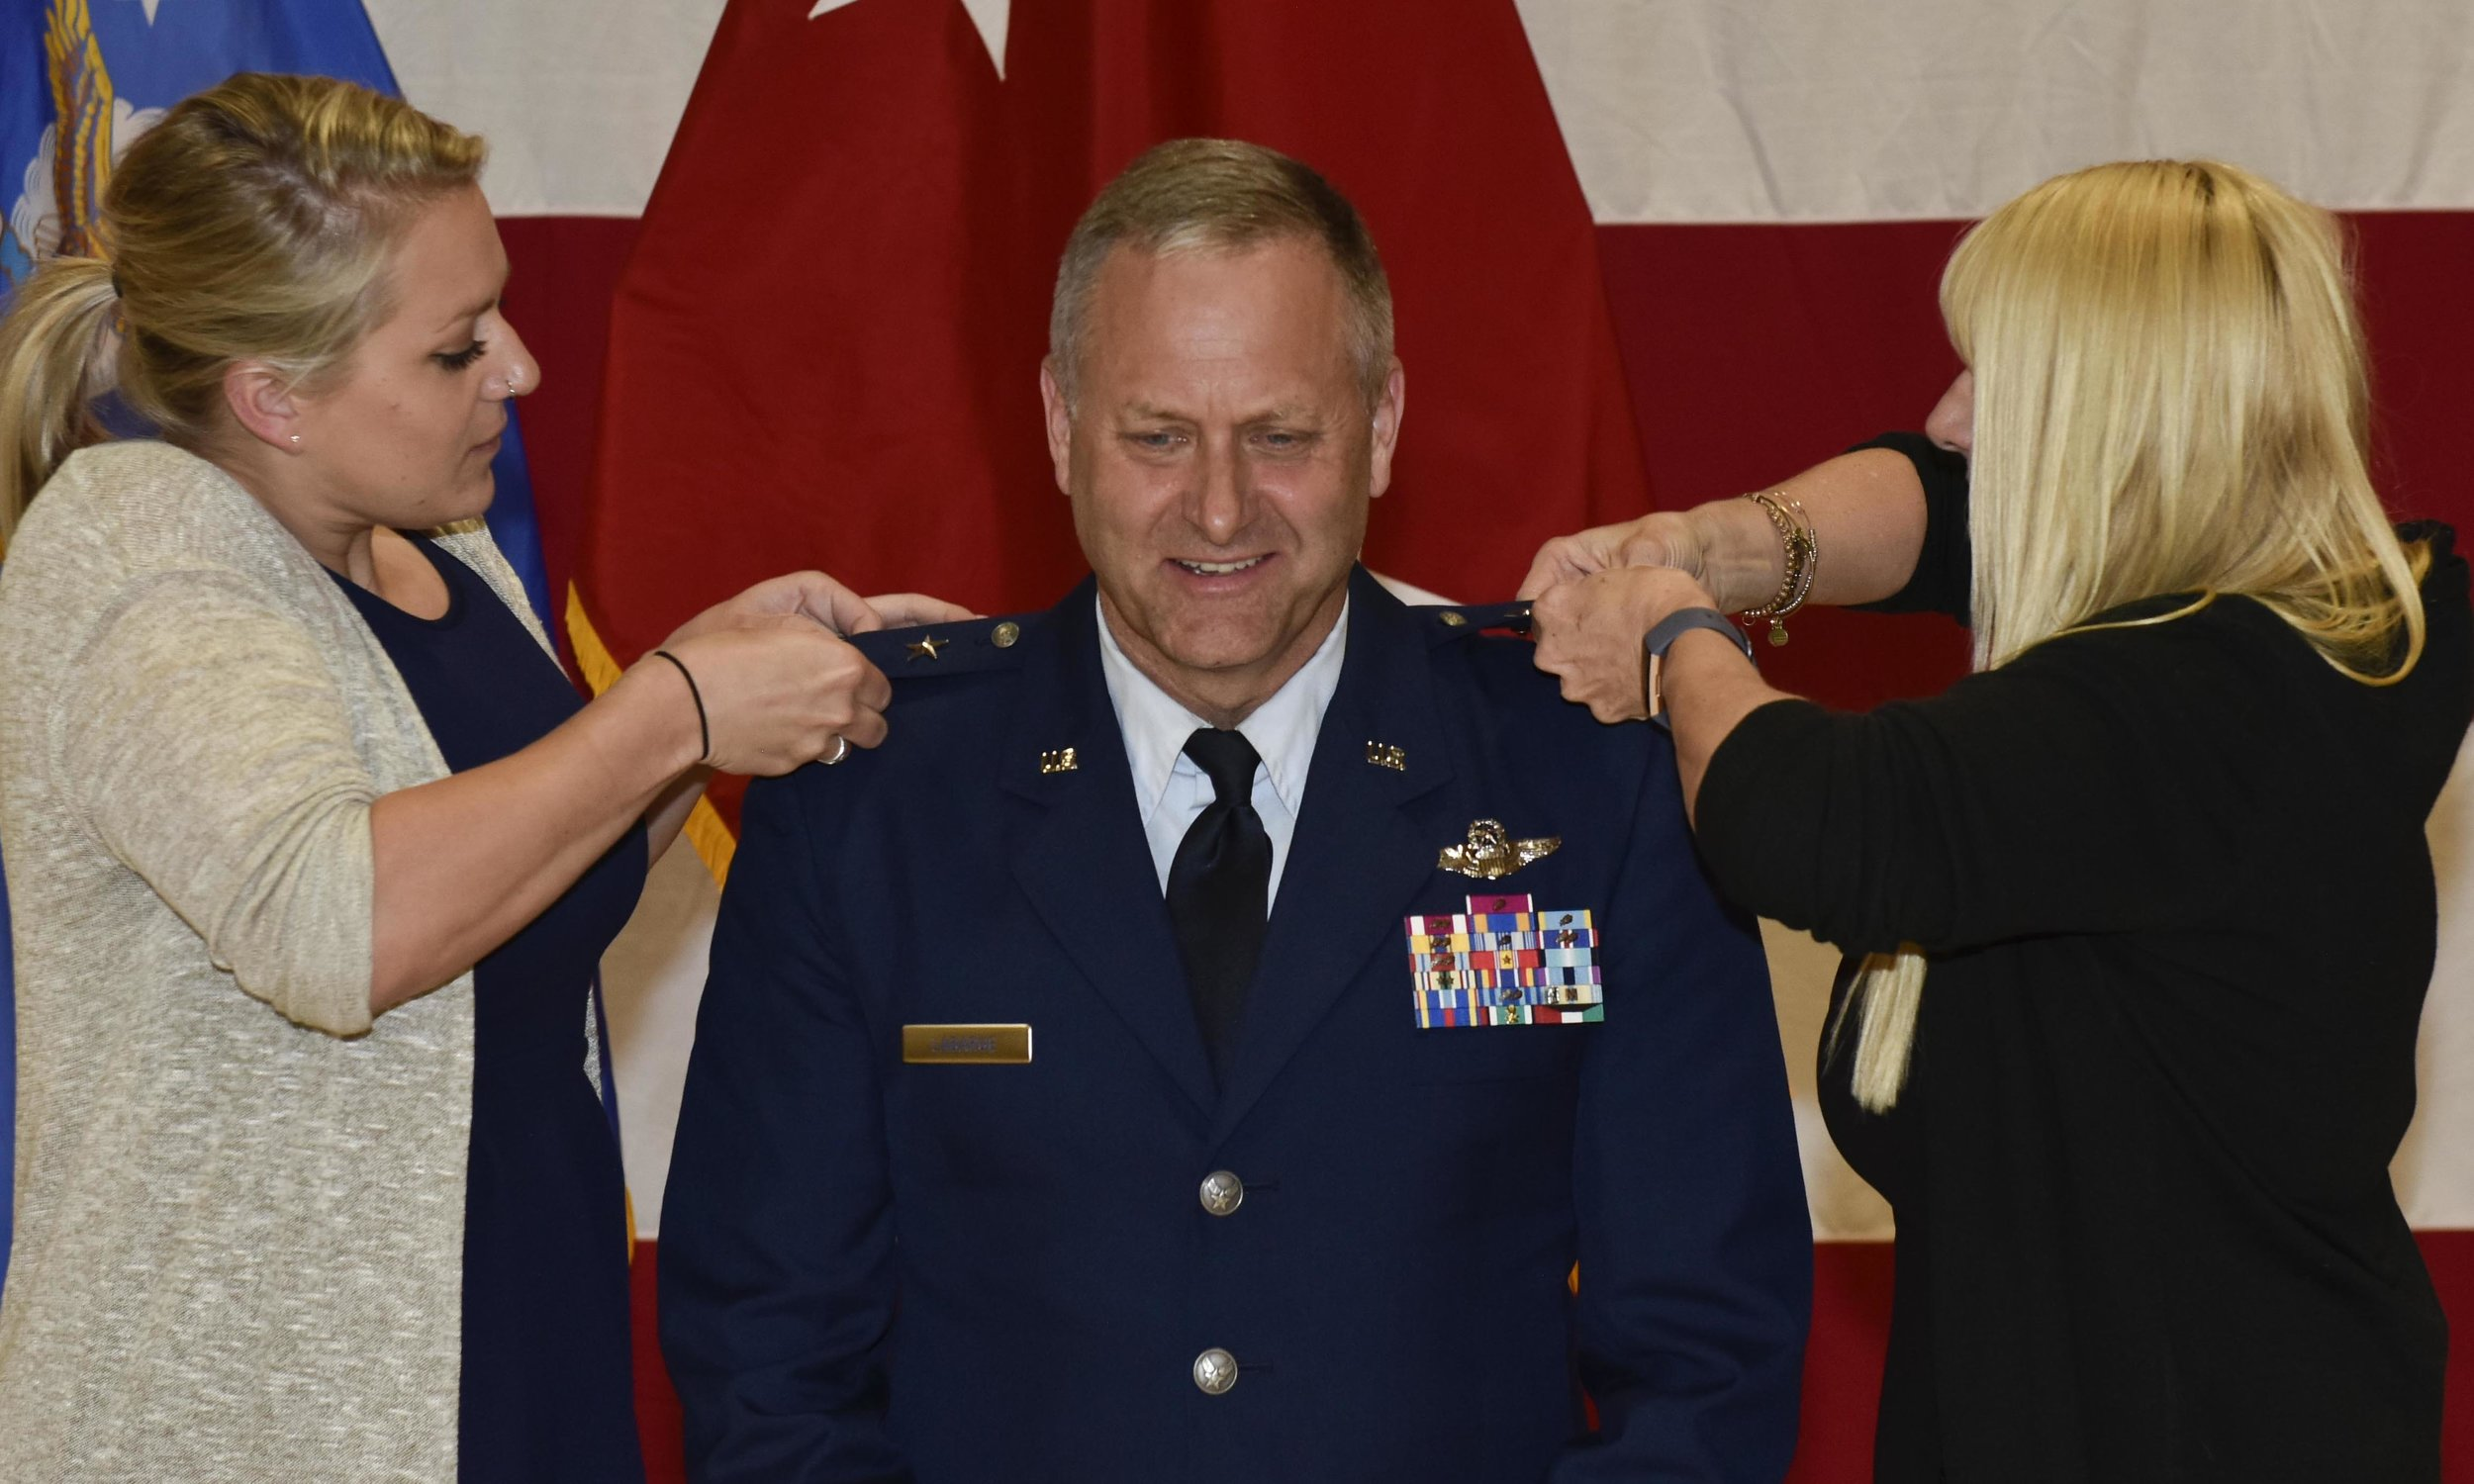 New York Air National Guard Major General Timothy LaBarge, the commander of the New York Air National Guard and a Tupper Lake resident, receives his second star from his daughter Emily (left) and his wife Petra, during promotion ceremonies held on June 1, 2019 at New York National Guard Headquarters in Latham, N.Y. LaBarge and Major General Thomas Owens, Air National Guard Assistant to the commander of Air Force Global Strike Command, were promoted to Major General rank in a dual ceremony by Major General Ray Shields, the Adjutant General of New York (U.S. Air National Guard photo by Staff Sgt. Ben German)